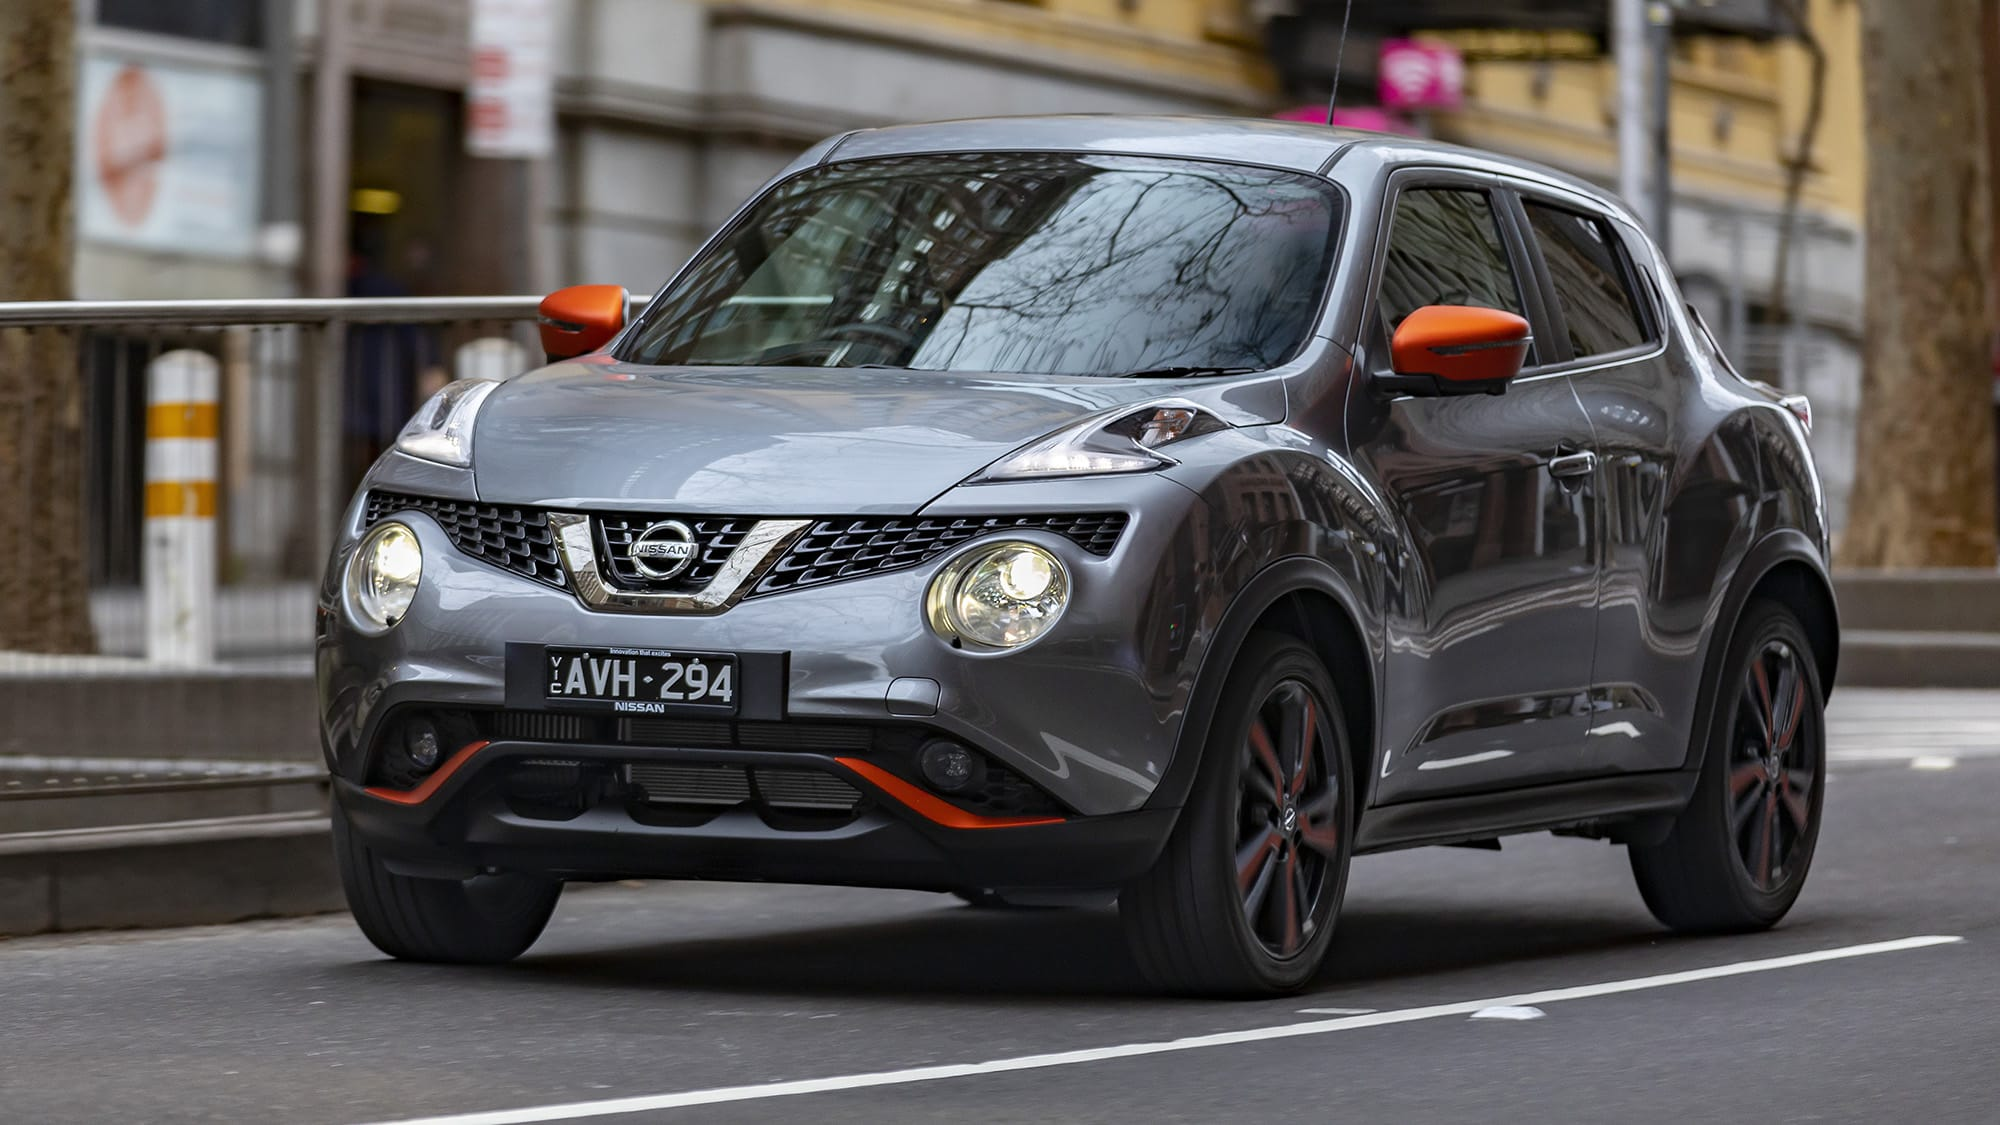 2020 nissan juke to debut this year with electrified